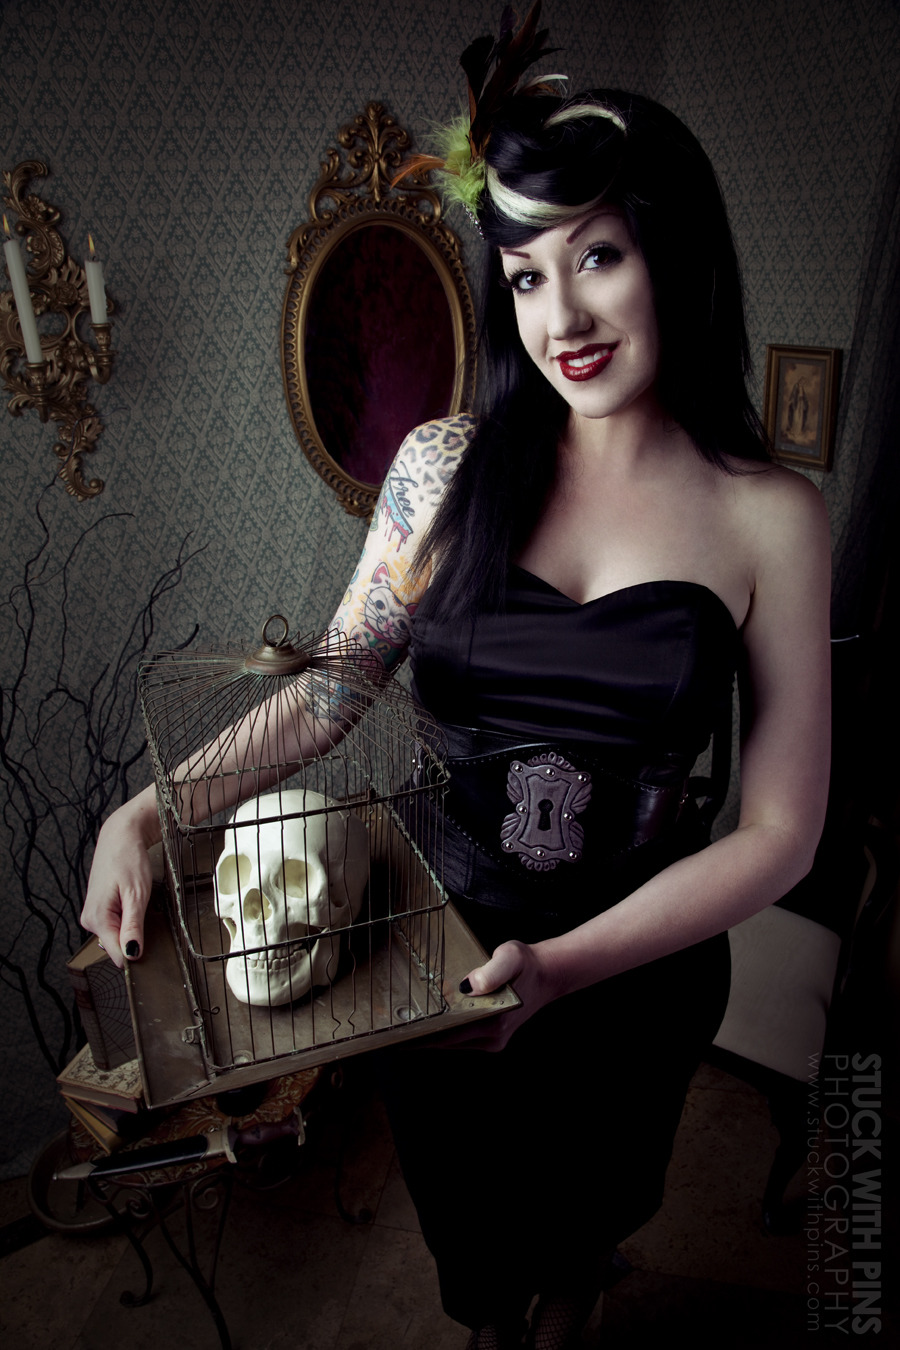 undeadstars:  Model : Nikki Ferris Photographer : Corinne